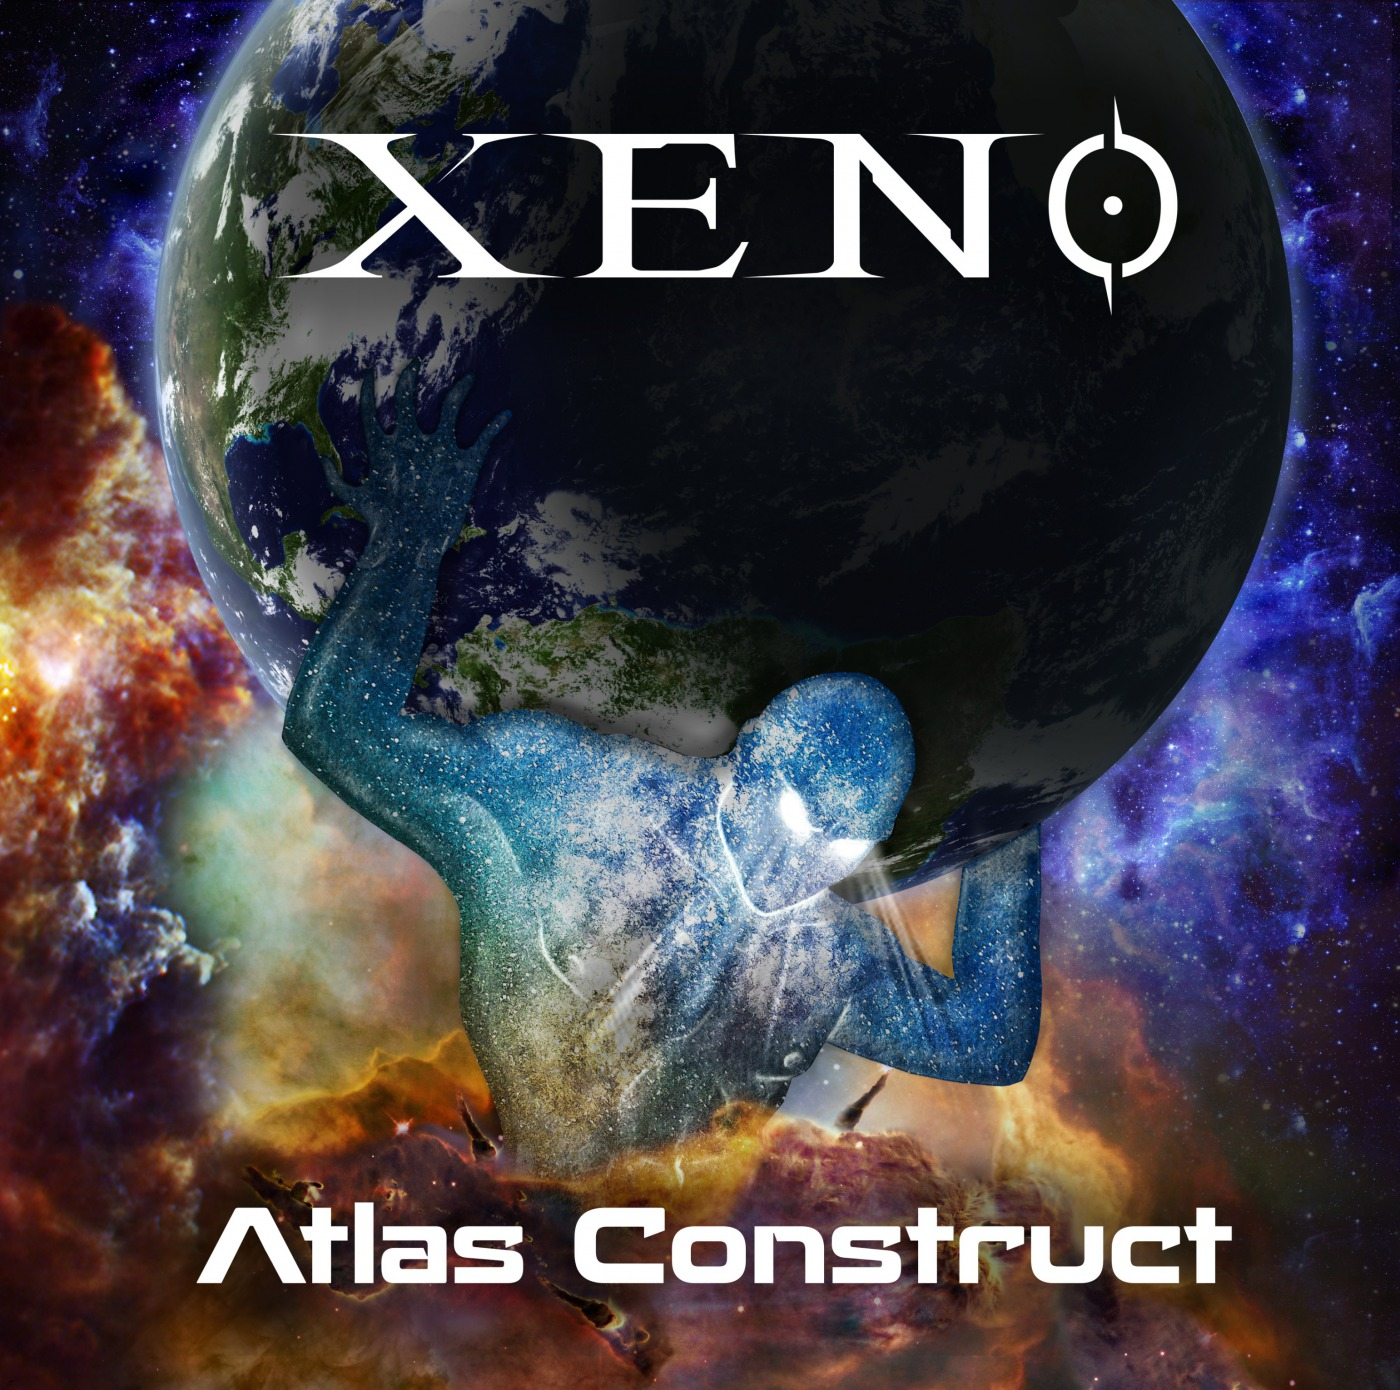 gallery/XENO album artwork - ECJ Artworks V2